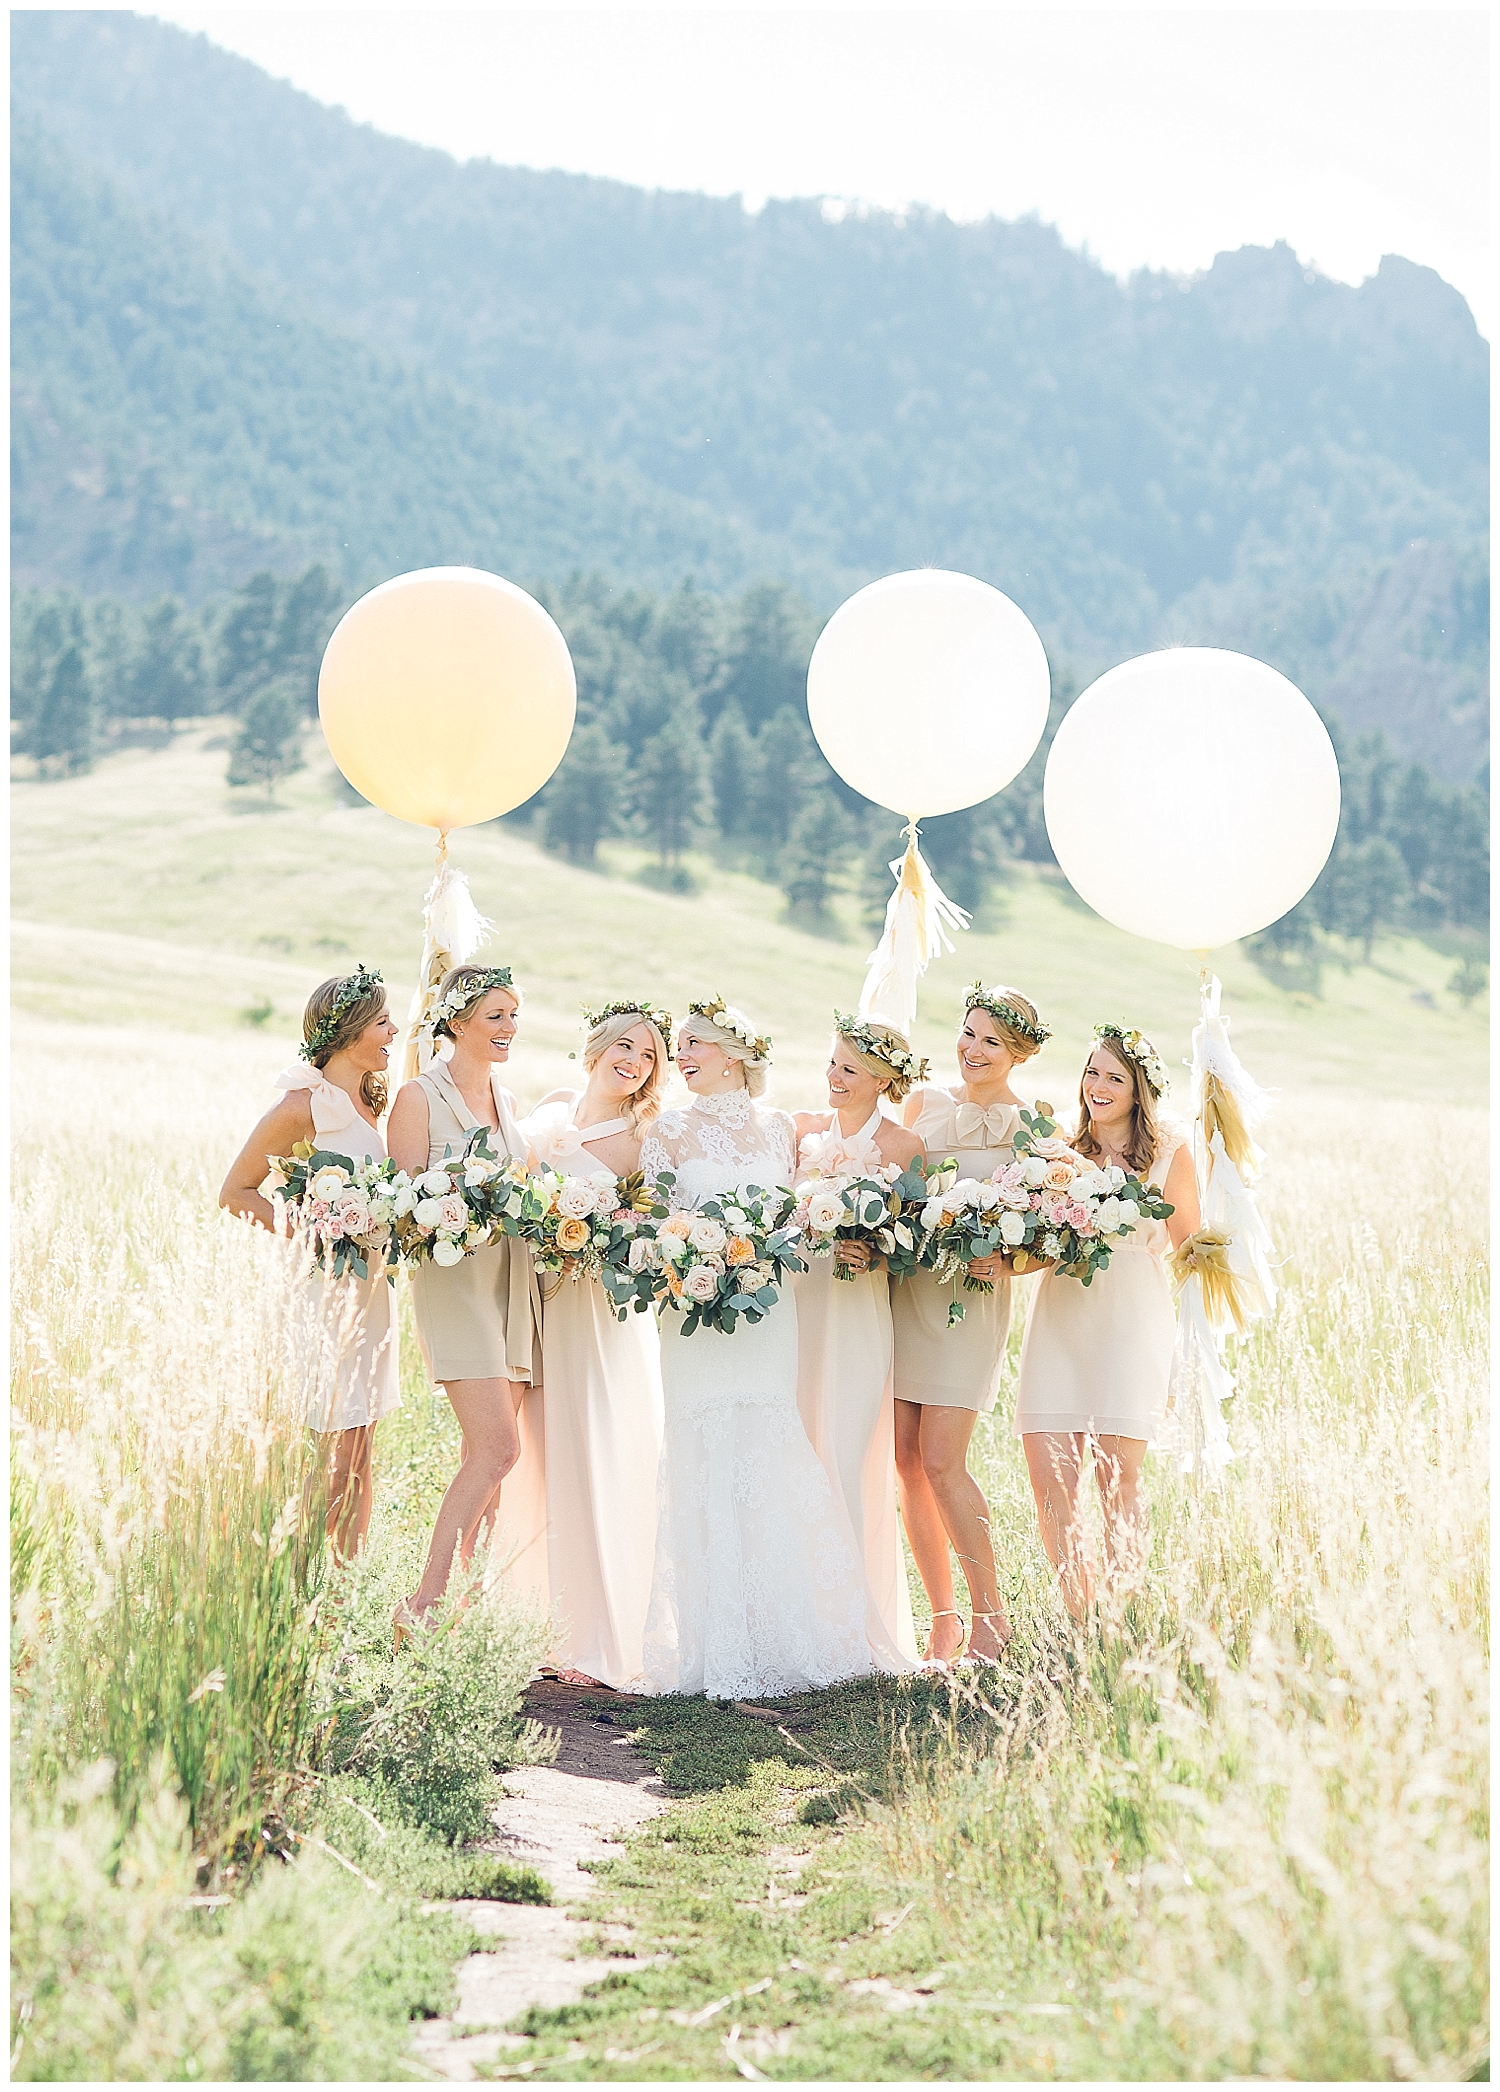 Guide to the Perfectly Mismatched Bridal Party •  Bella Bridesmaids Madison | Photo by Cyn Kain Photography